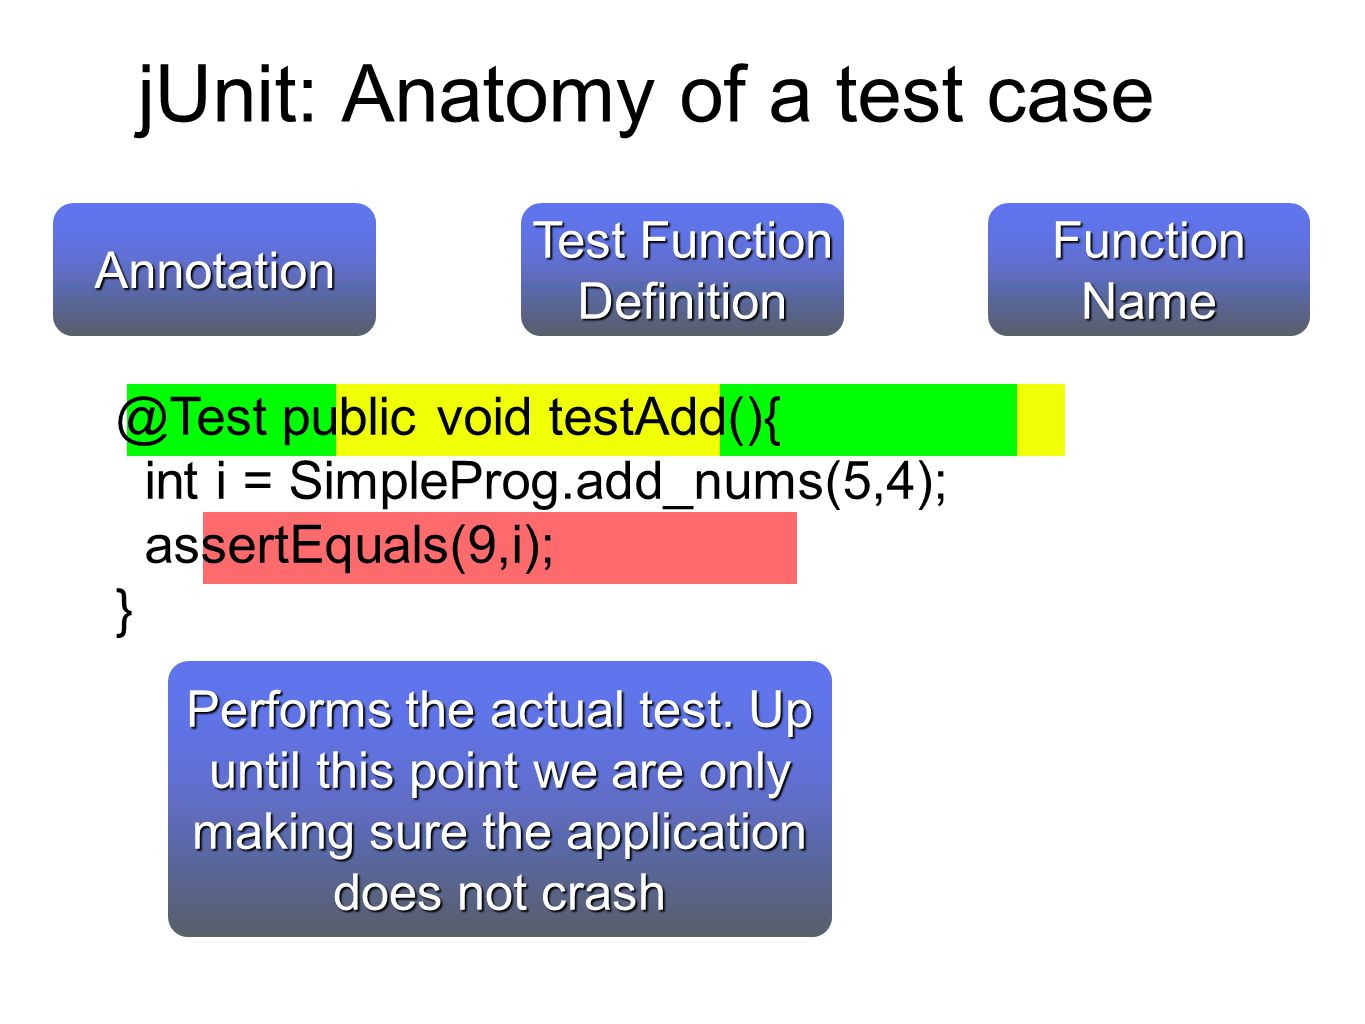 jUnit: Anatomy of a test case @Test public void testAdd(){ int i = SimpleProg.add_nums(5,4); assertEquals(9,i); } Test Function Definition Annotation